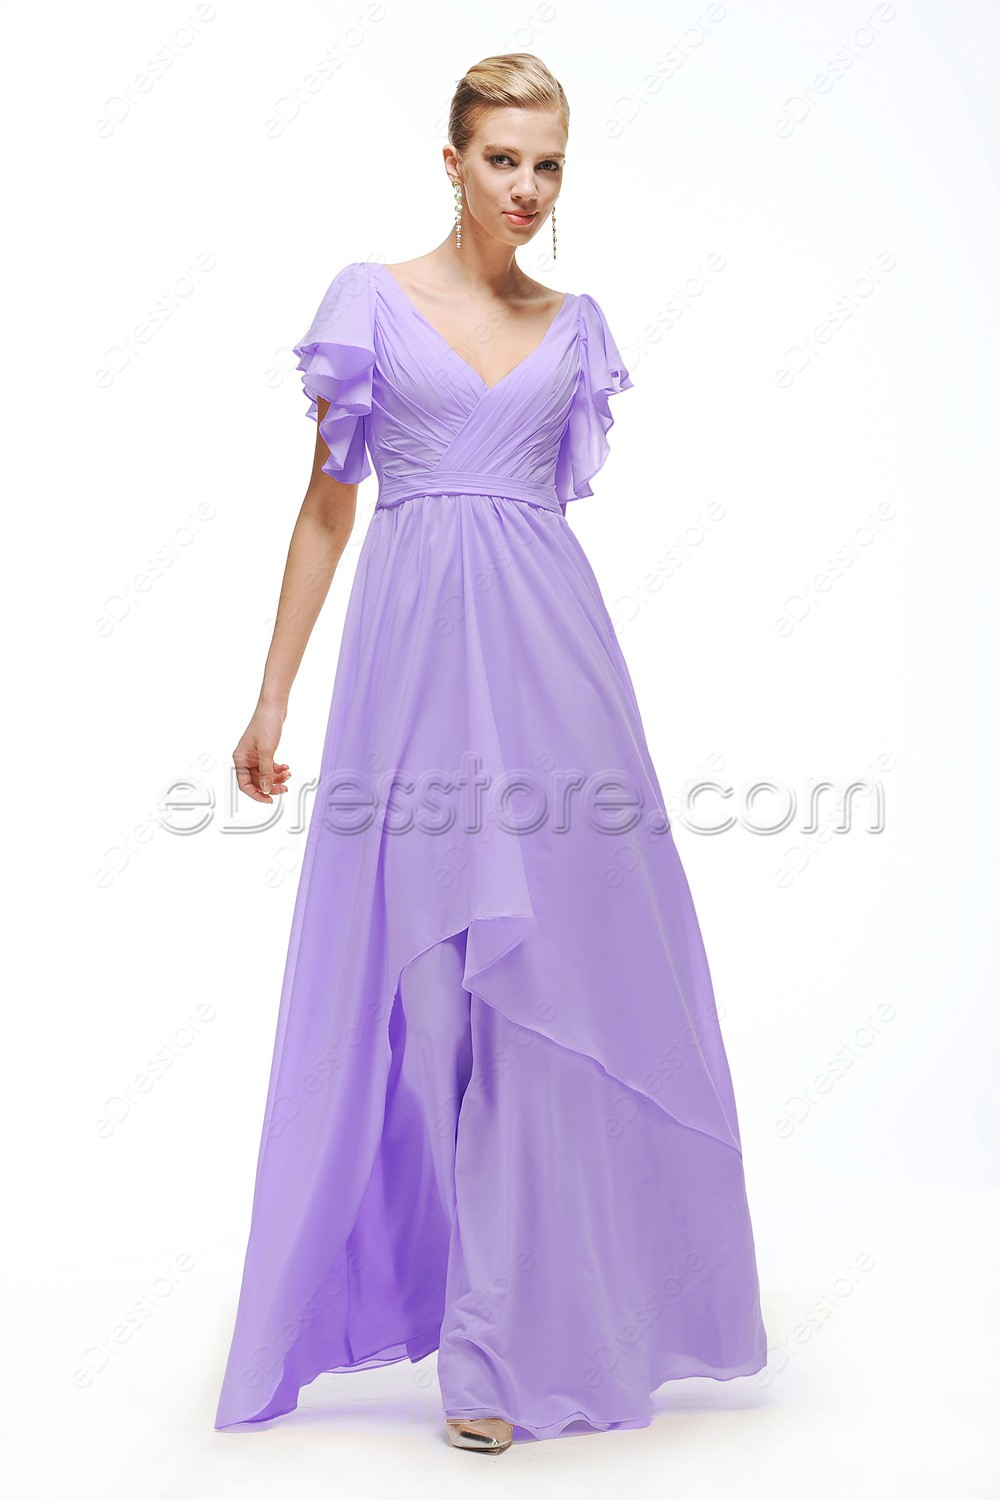 Plus Size Lavender Cocktail Dresses - Prom Dresses Vicky